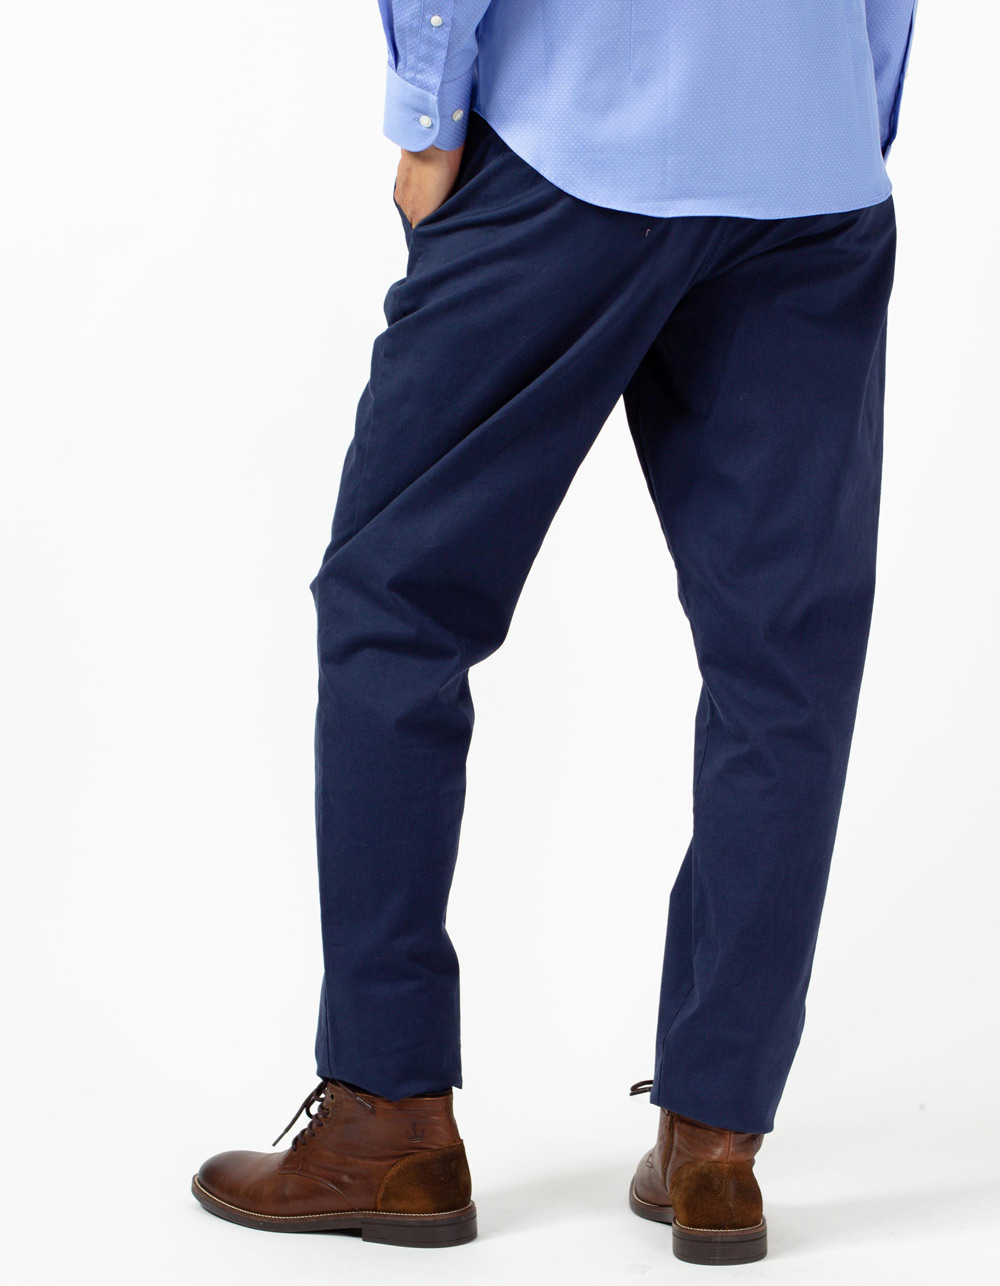 Blue trousers with darts - Backside